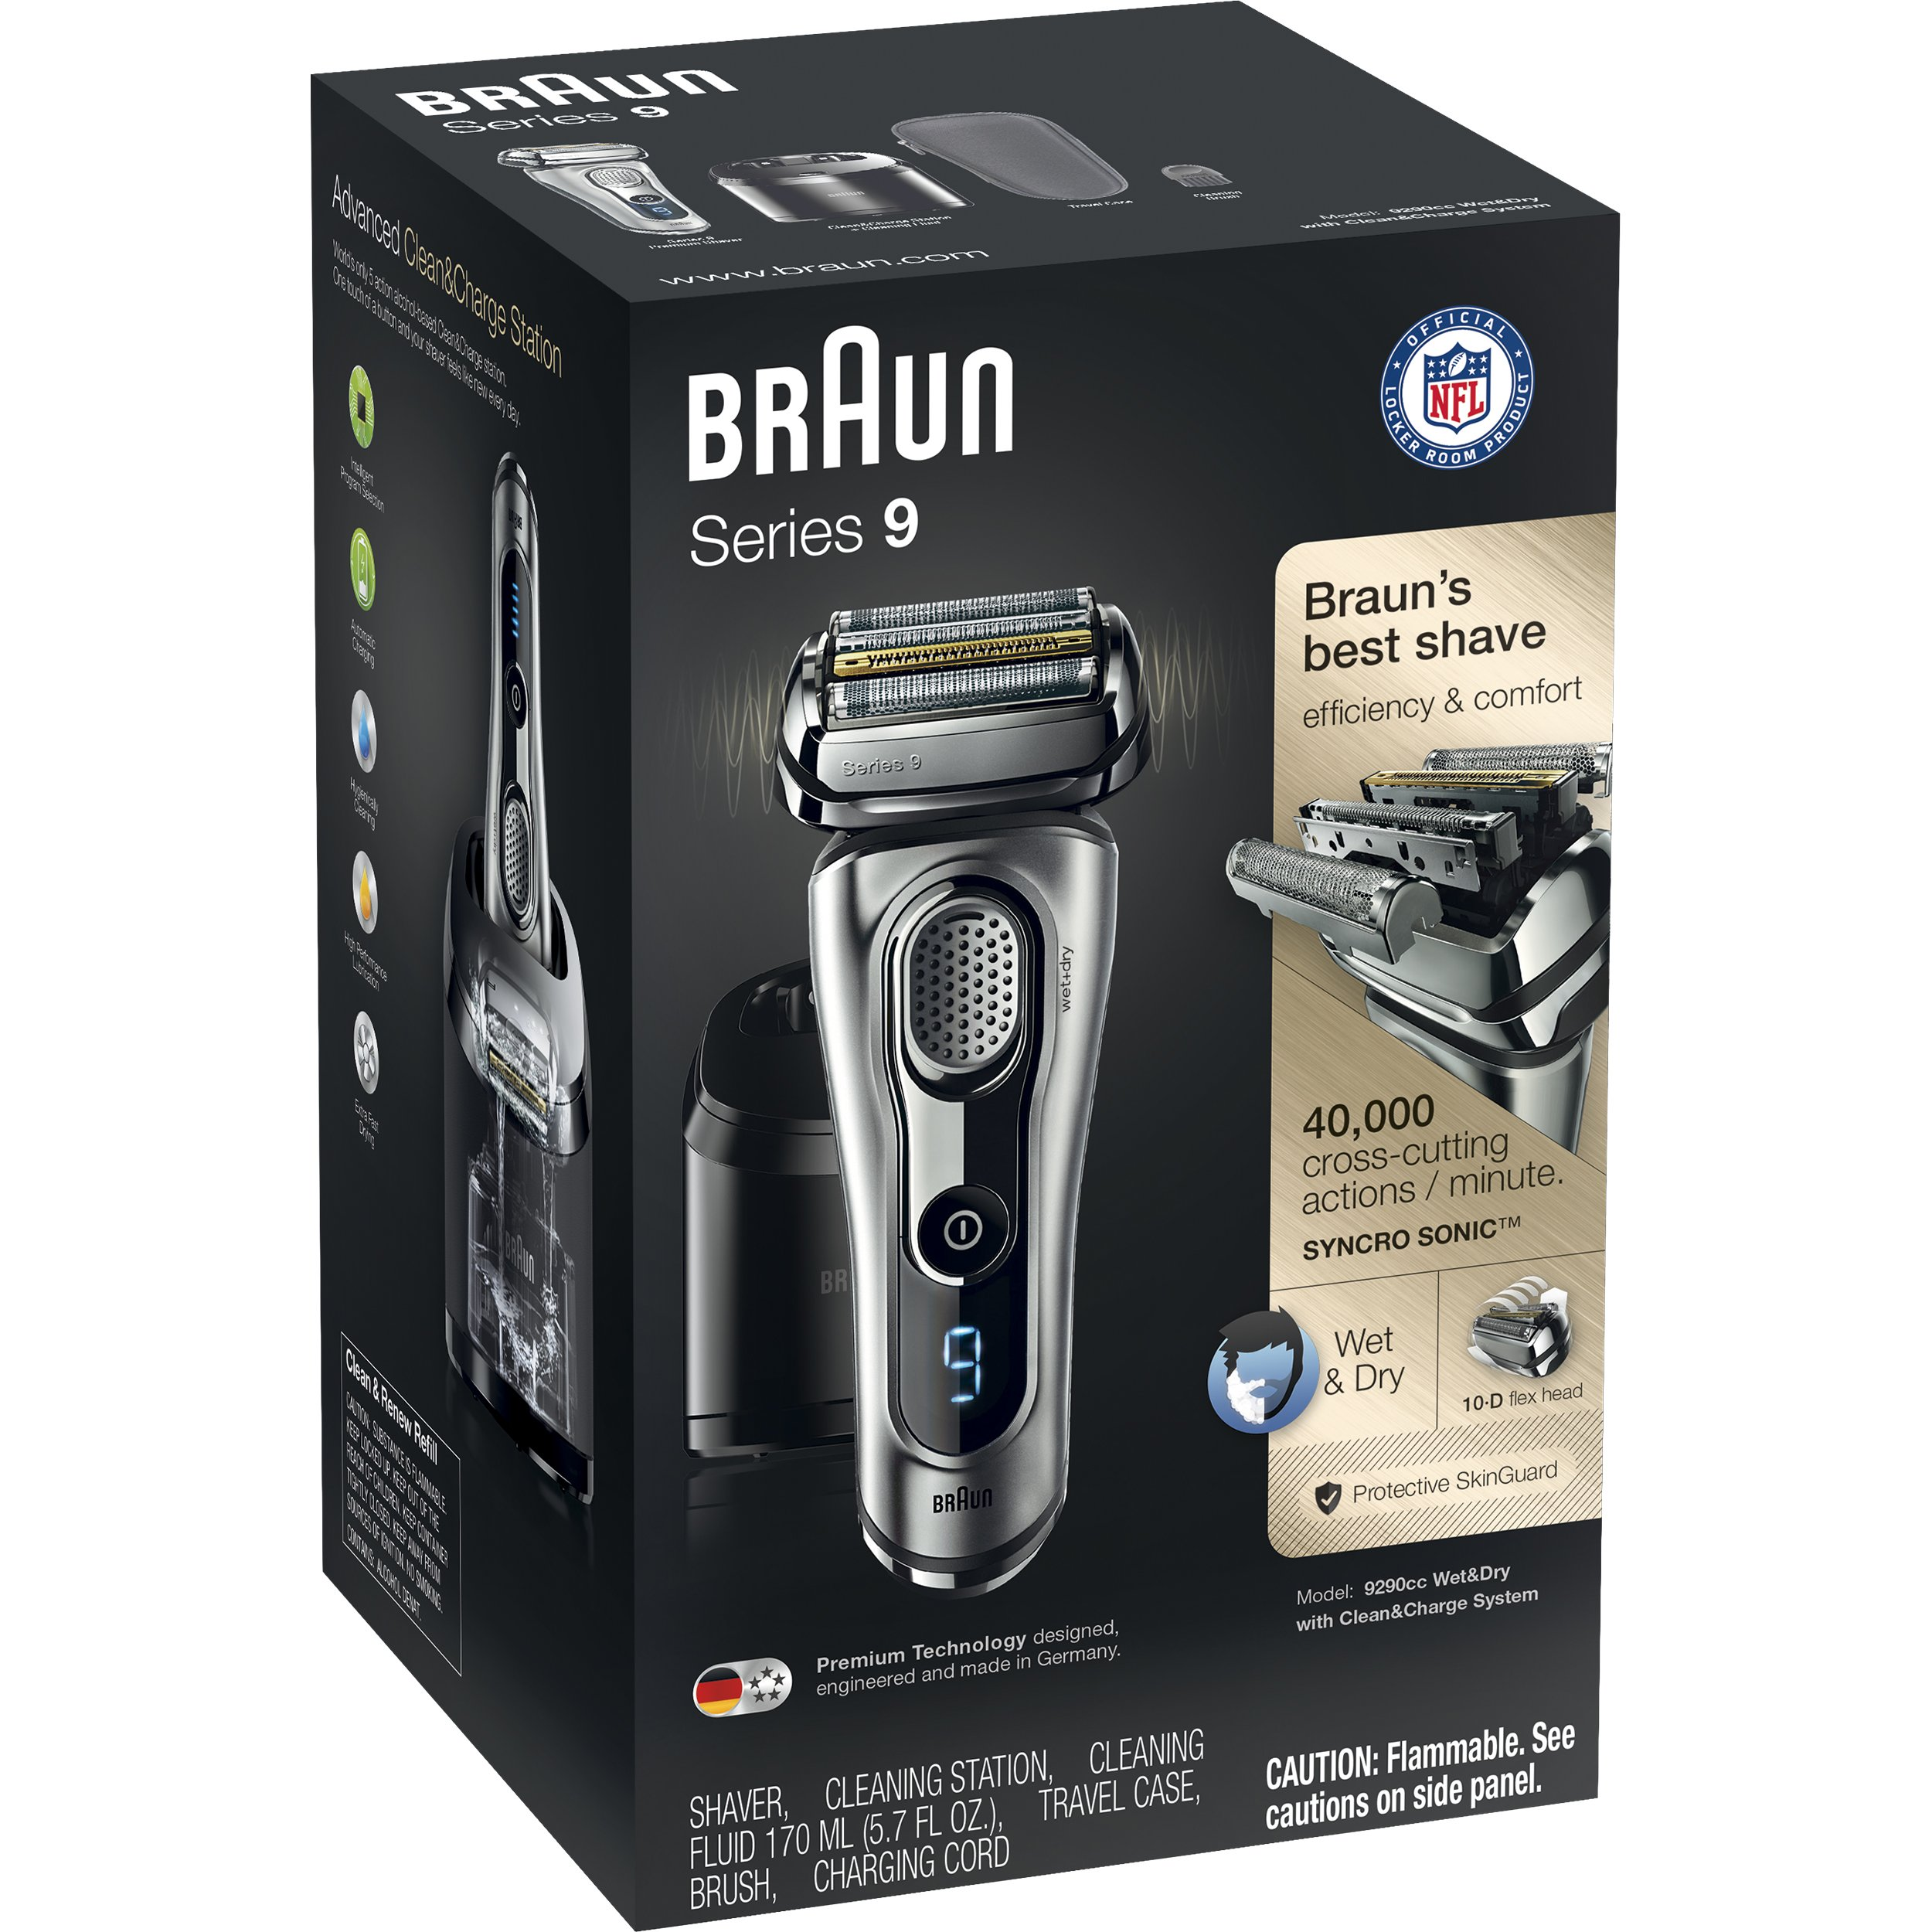 Braun Series 9290CC Men's Electric Foil Shaver / Electric Razor, Wet & Dry, Travel Case with Clean & Charge System by Braun (Image #4)